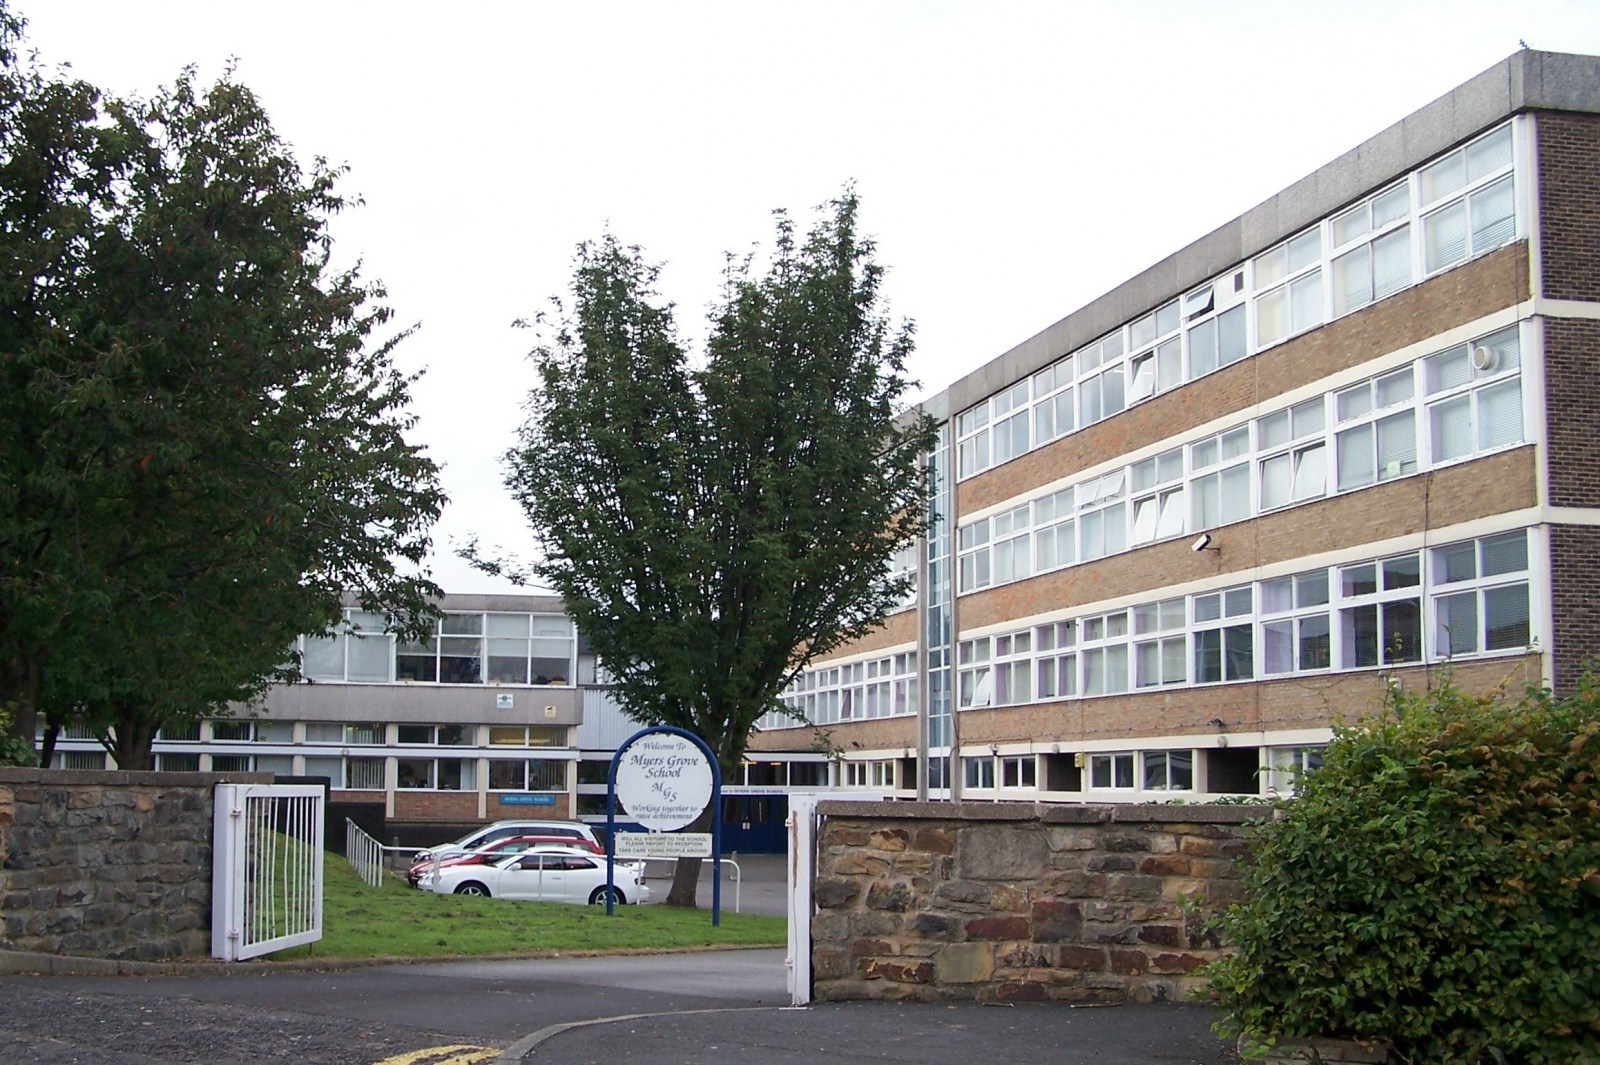 Myers_Grove_Secondary_School,_Wood_Lane,_Sheffield_-_2_-_geograph.org.uk_-_1703824.jpg